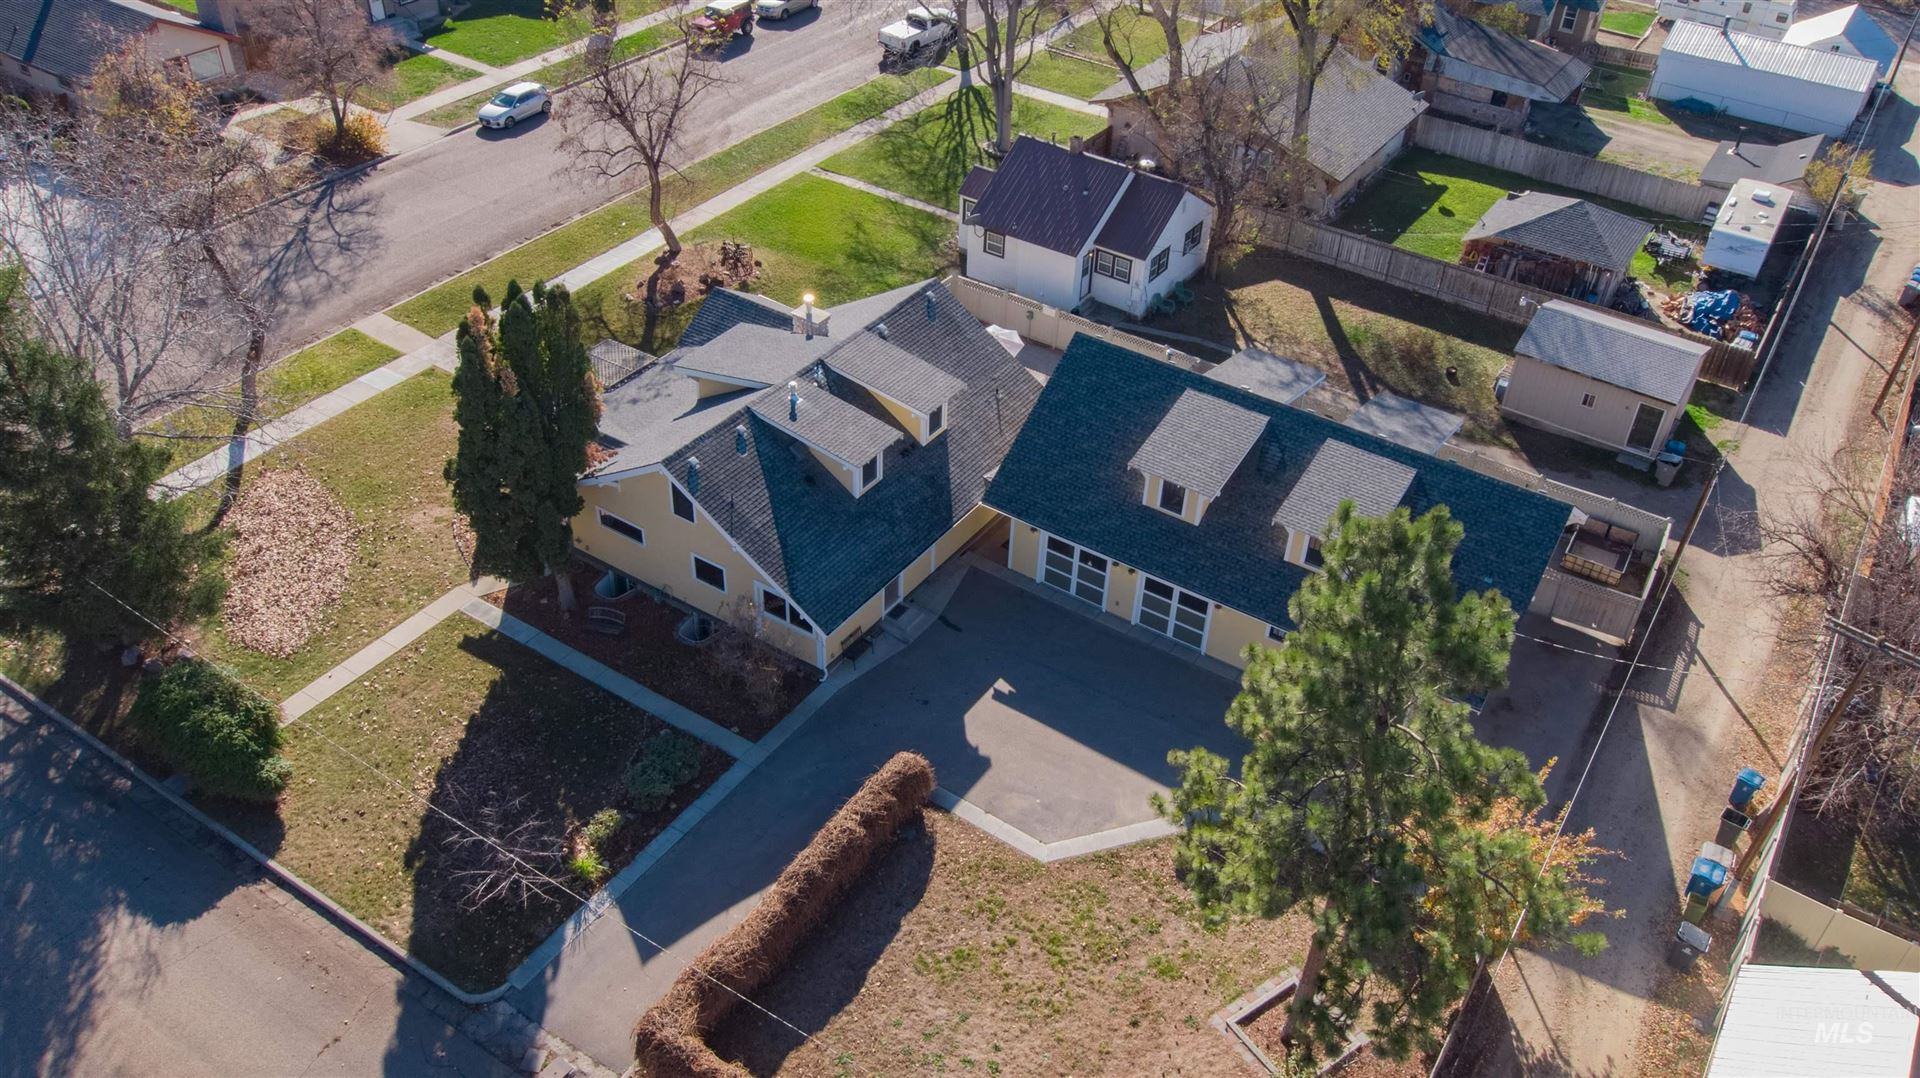 1003 S 14th Ave, Nampa, ID 83651 - MLS#: 98822829